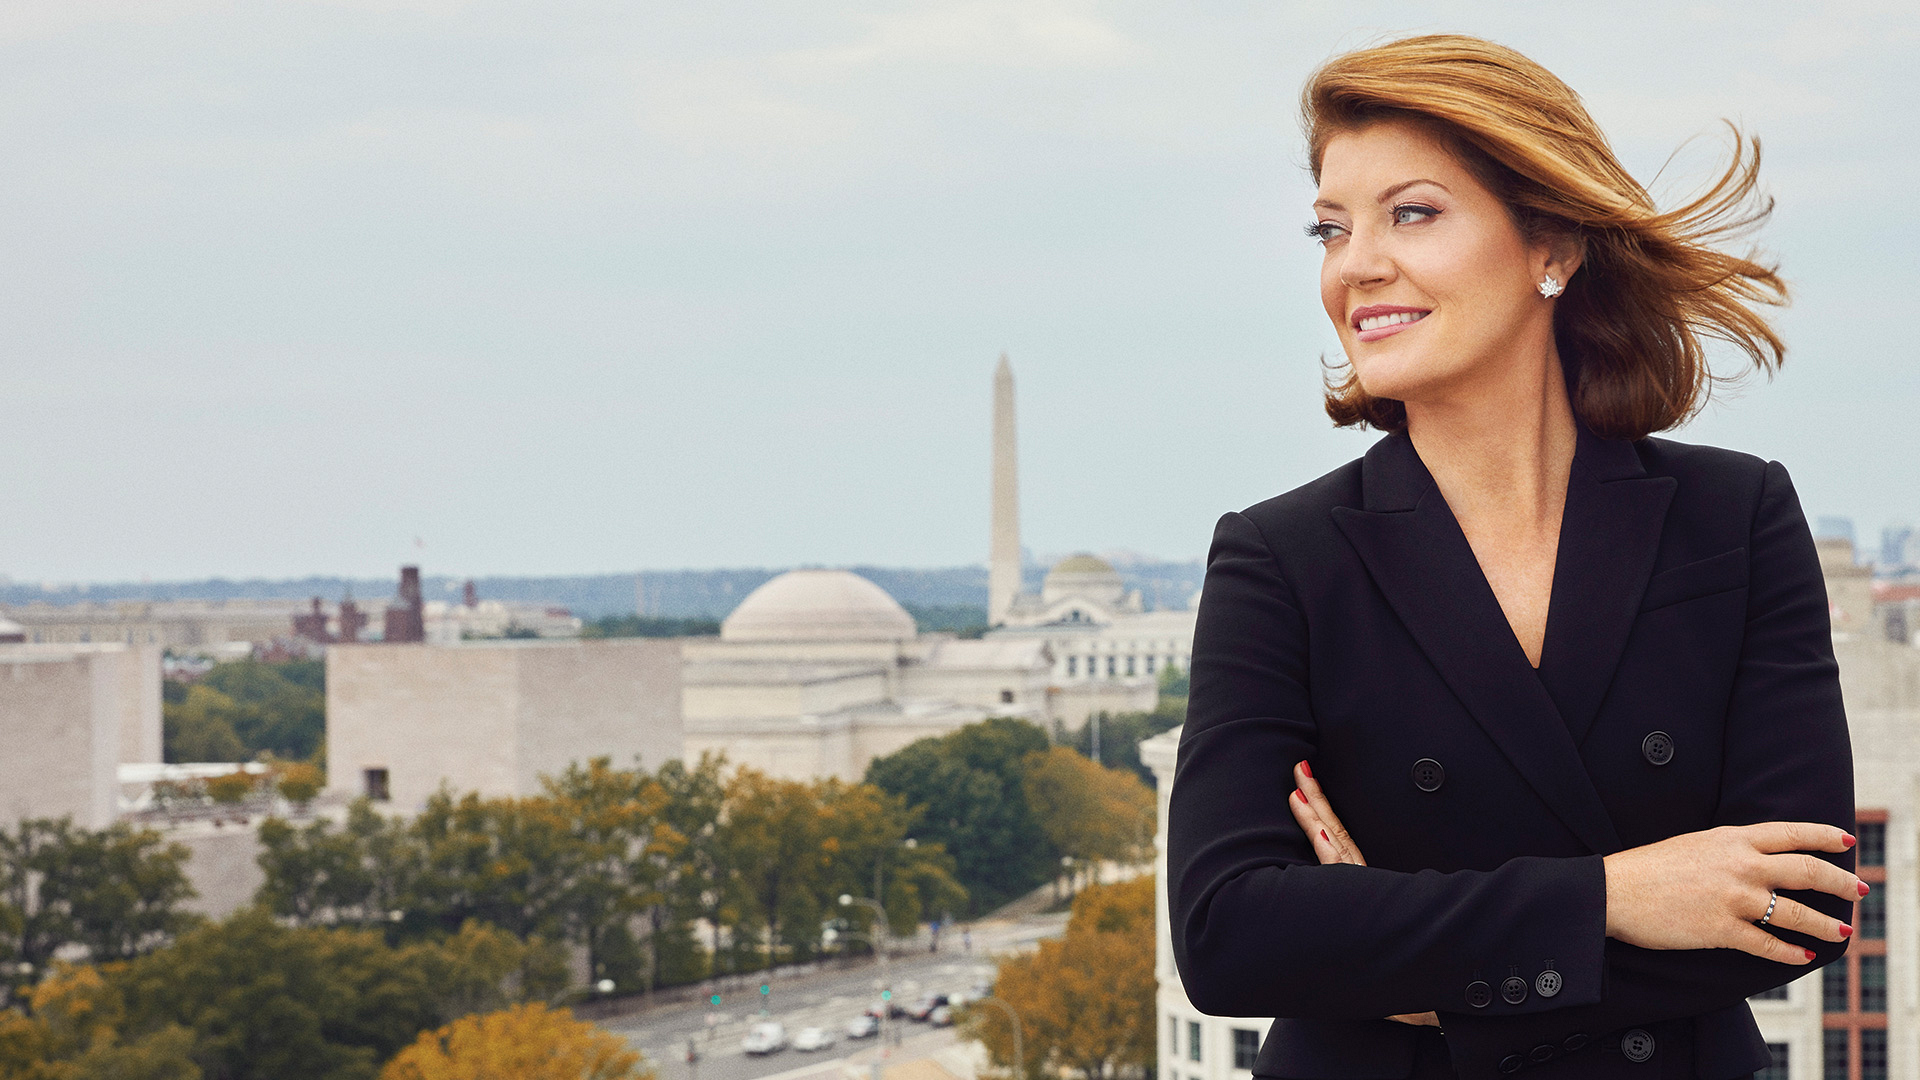 Norah O'Donnell shines in this monumental cover photo shoot